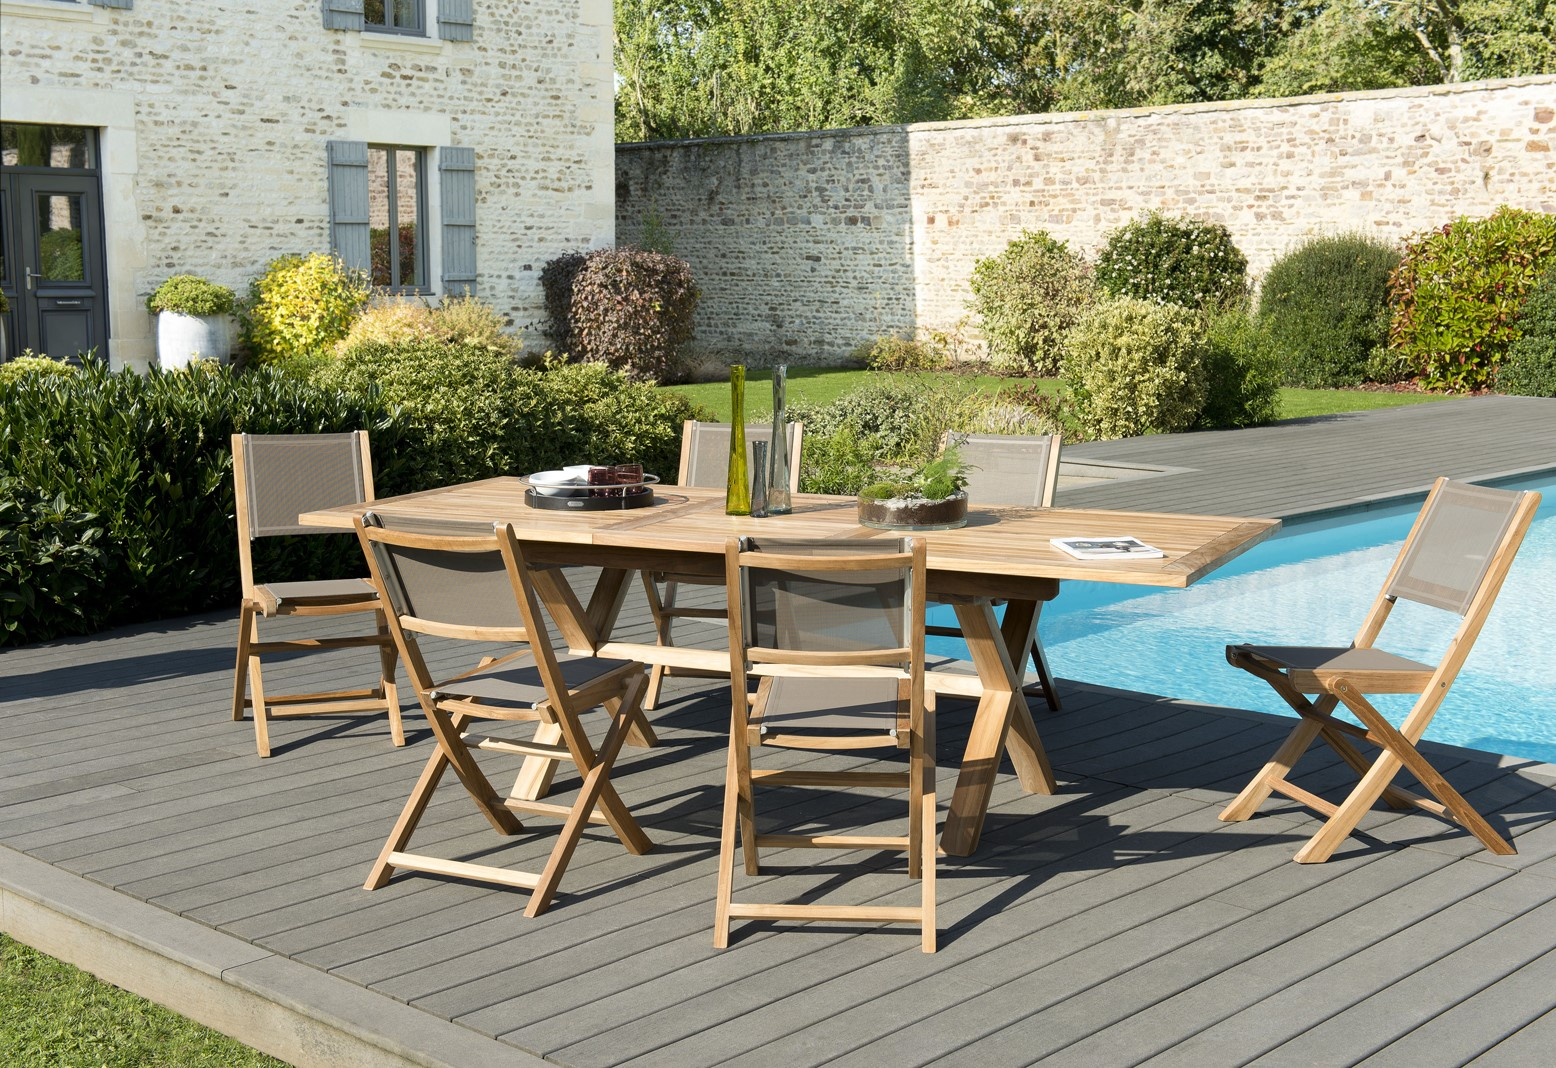 Salon de Jardin Teck Table extensible 180/240 + 6 chaises pliantes SUMMER  ref. 30020856